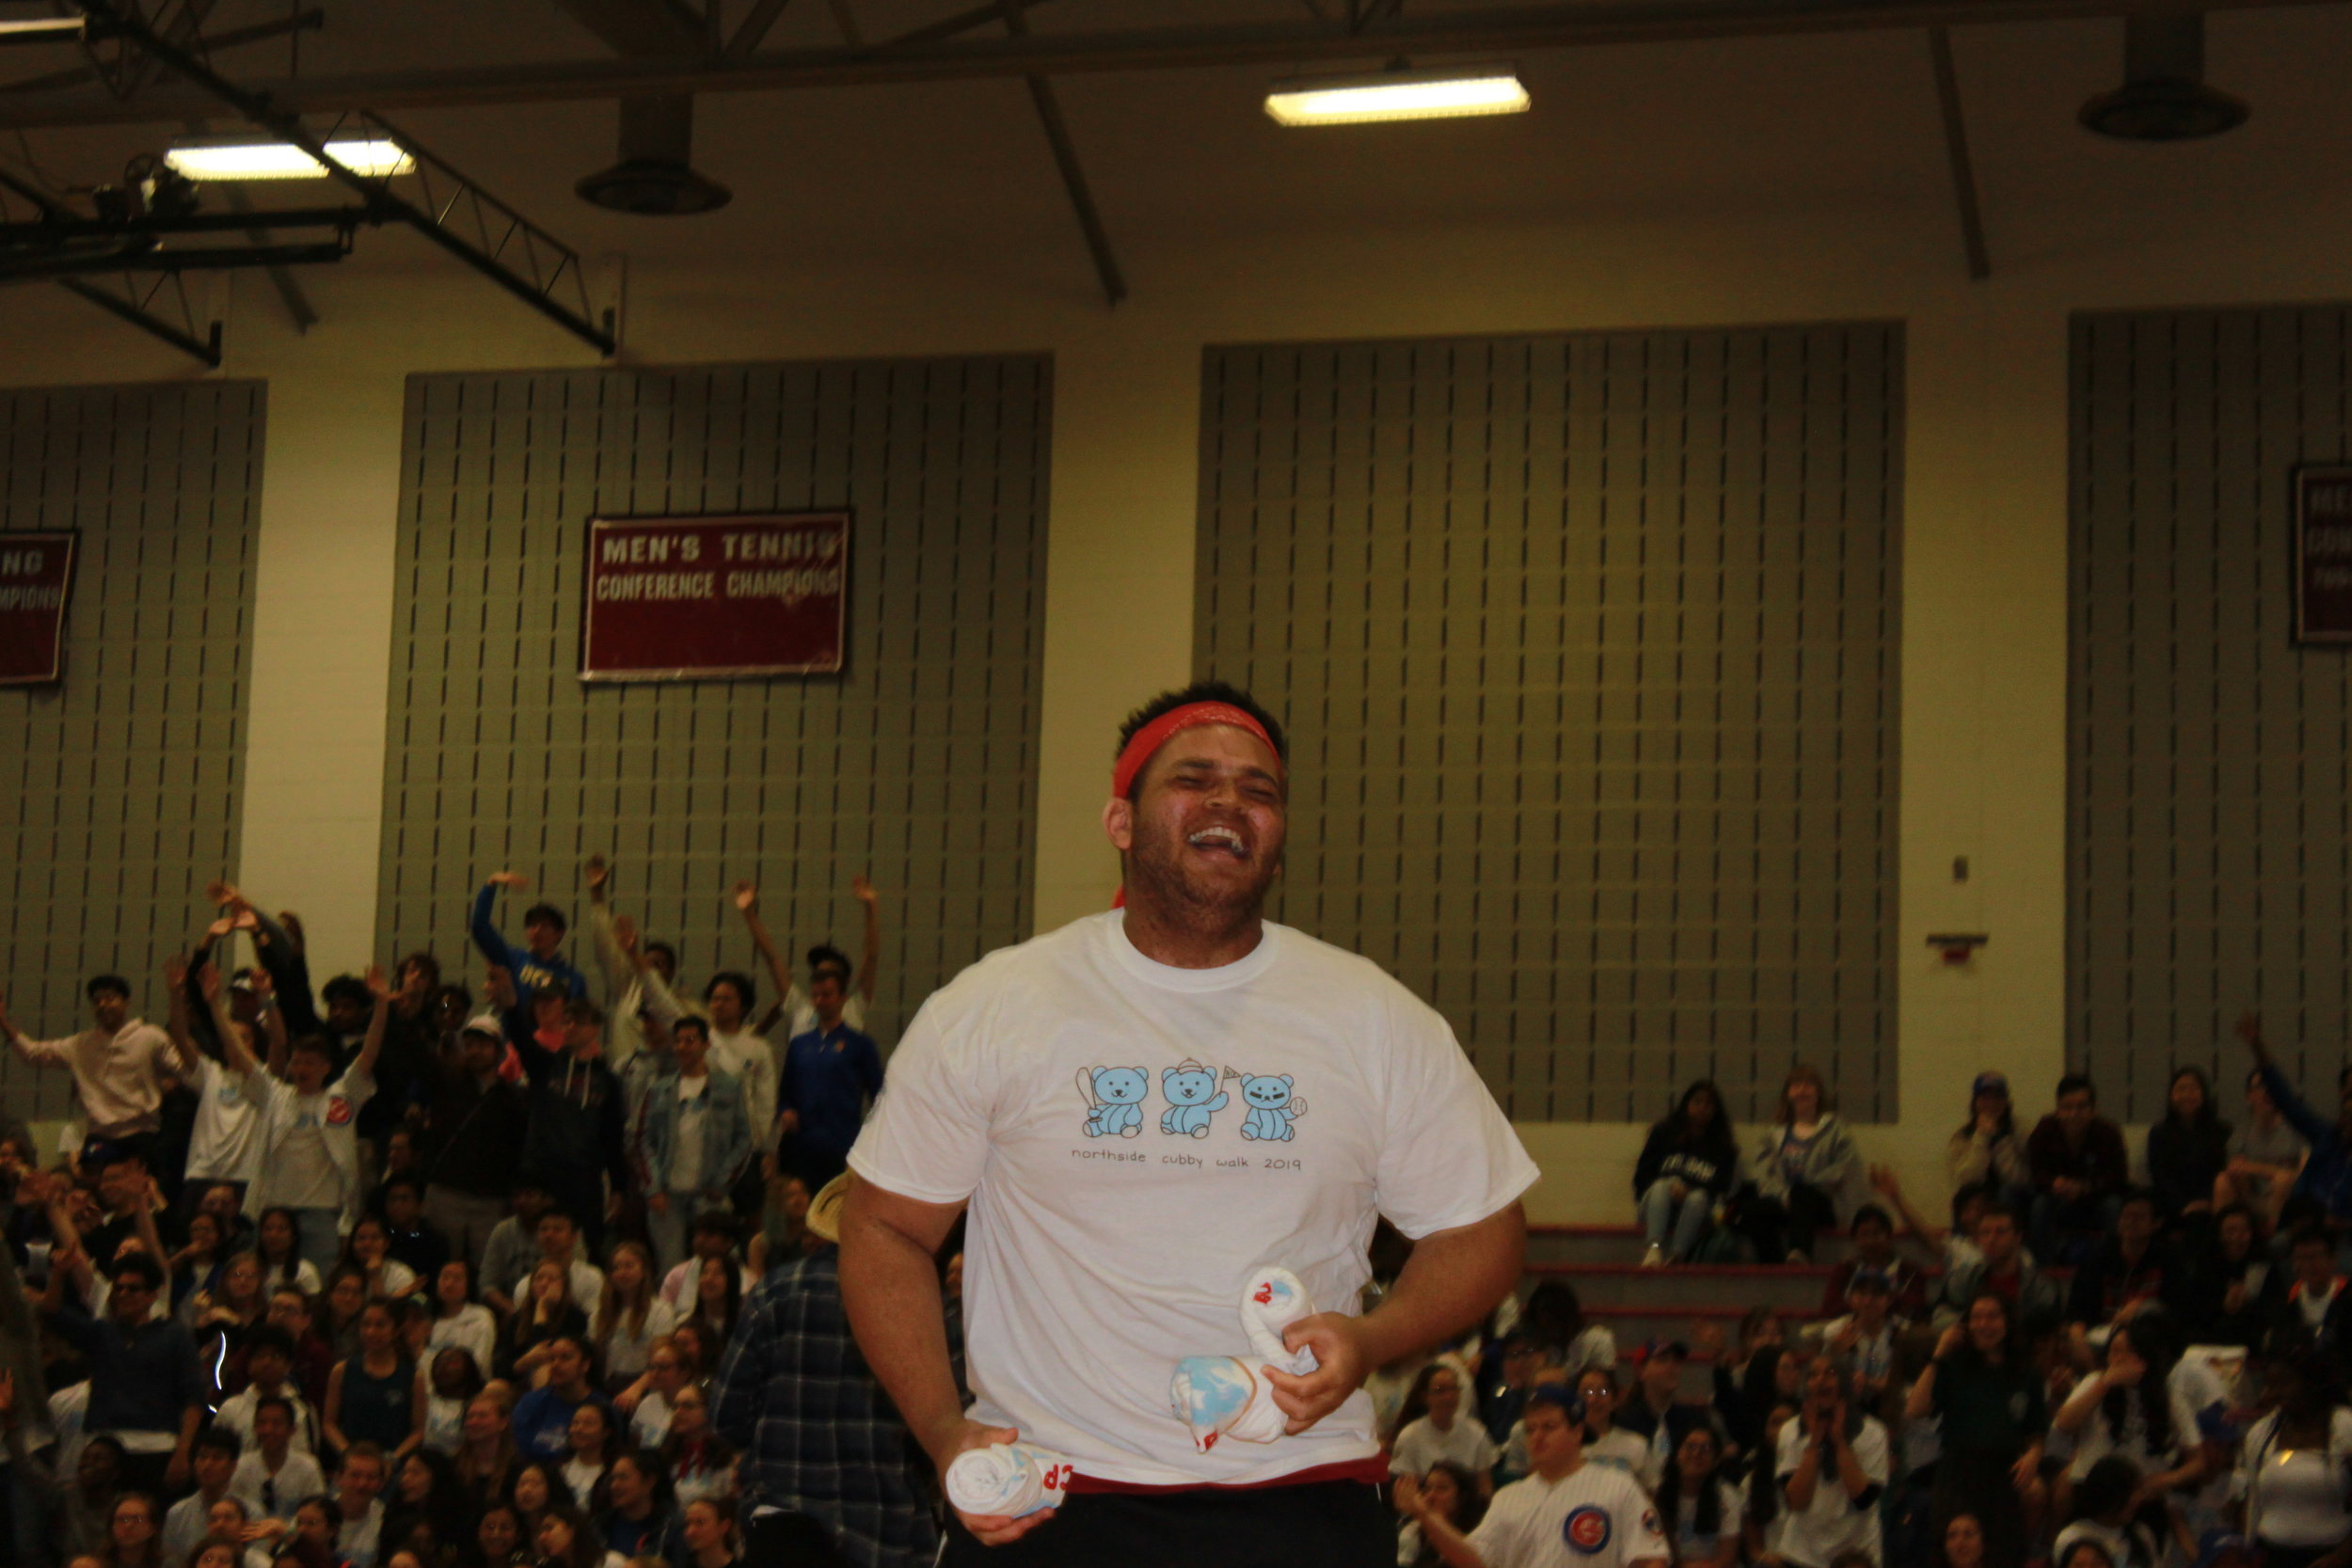 One of the emcees, Donovan Holt, Adv. 907, throws t-shirts at the crowd.